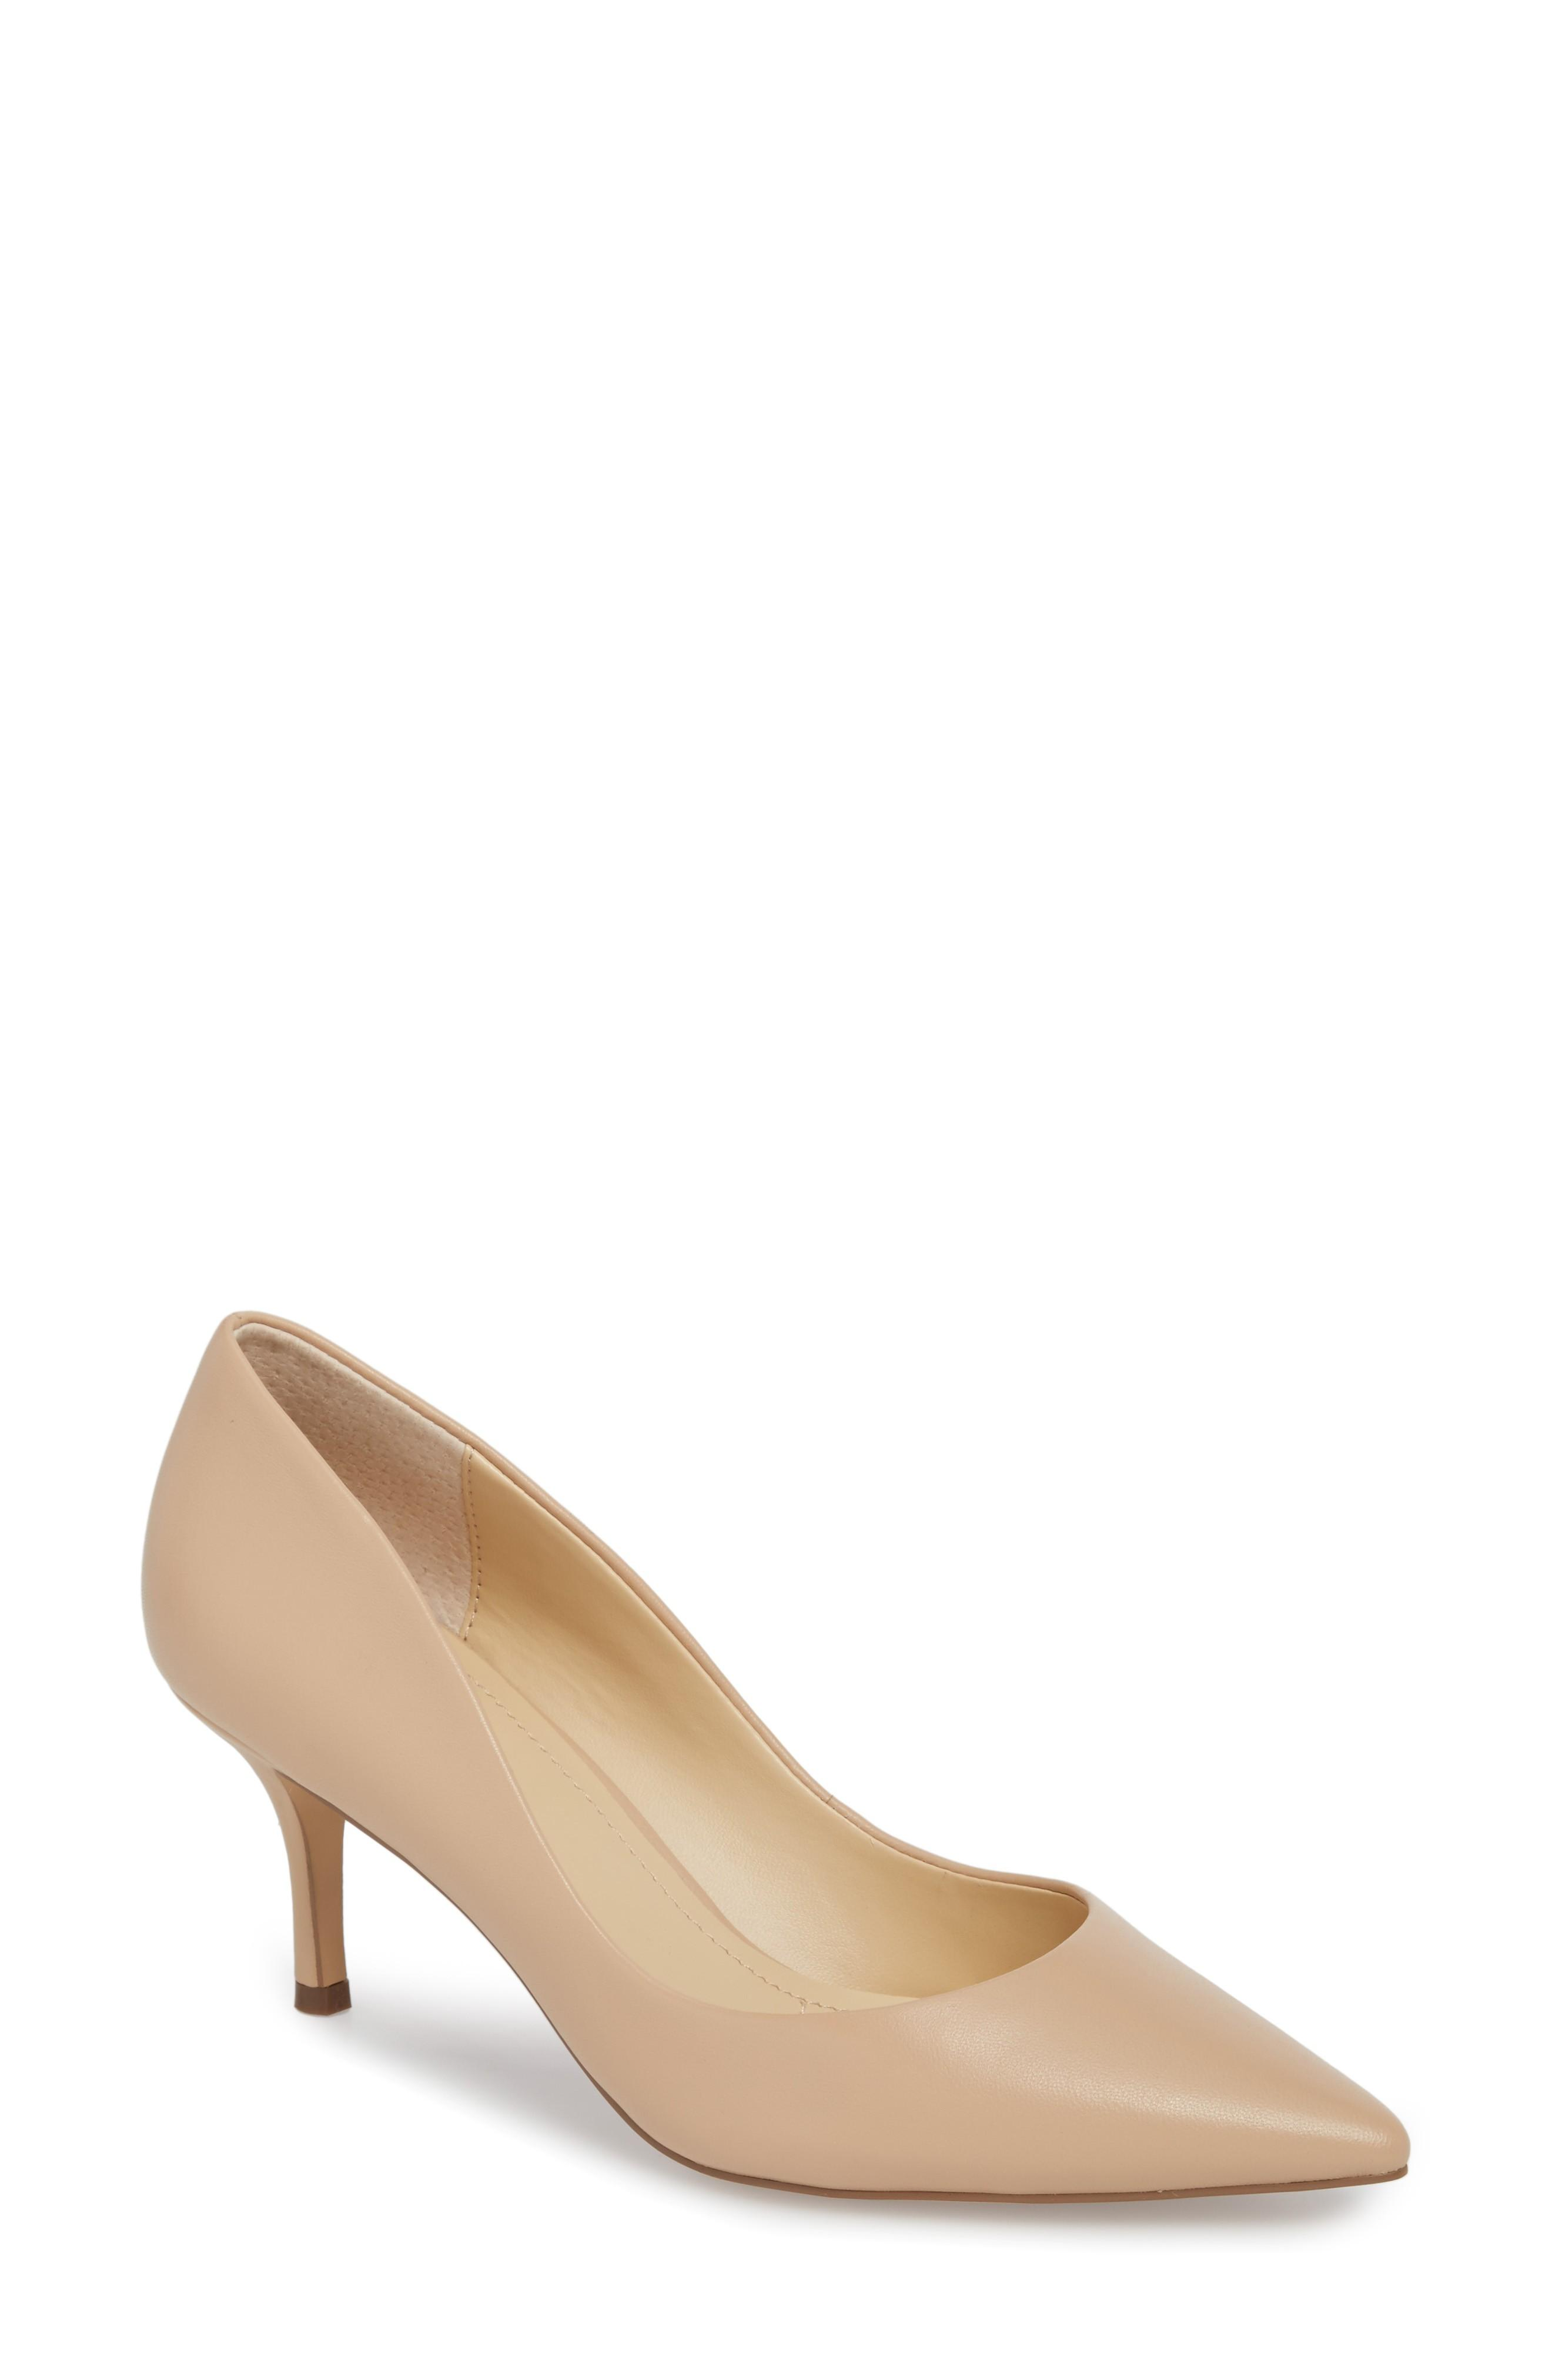 8f6edec603 Charles By Charles David Addie Pump In Nude Leather | ModeSens